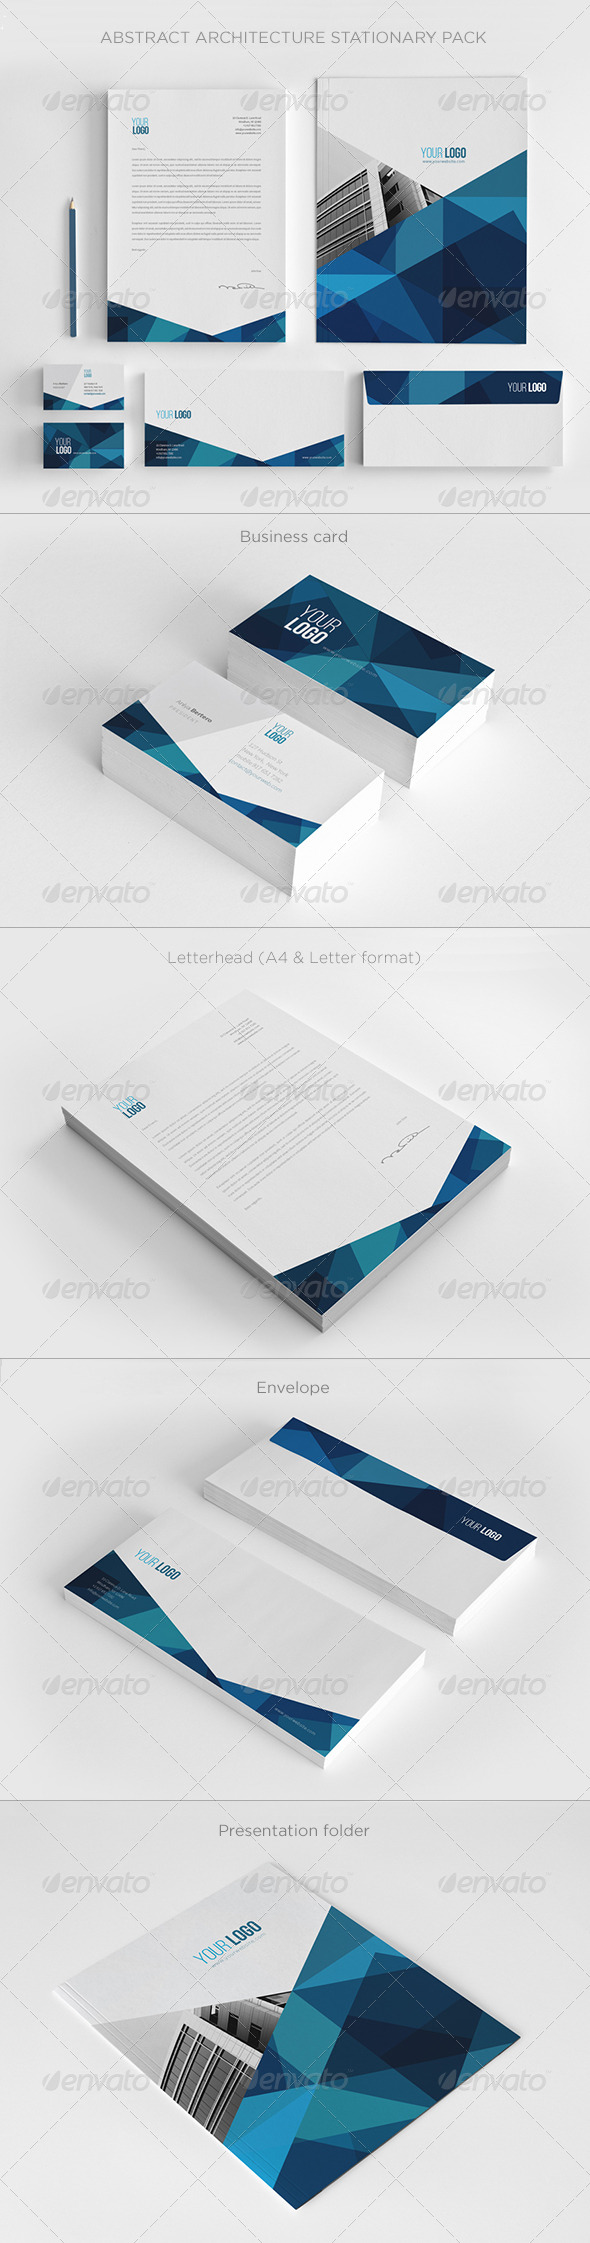 GraphicRiver Abstract Architecture Stationery Pack 7205071